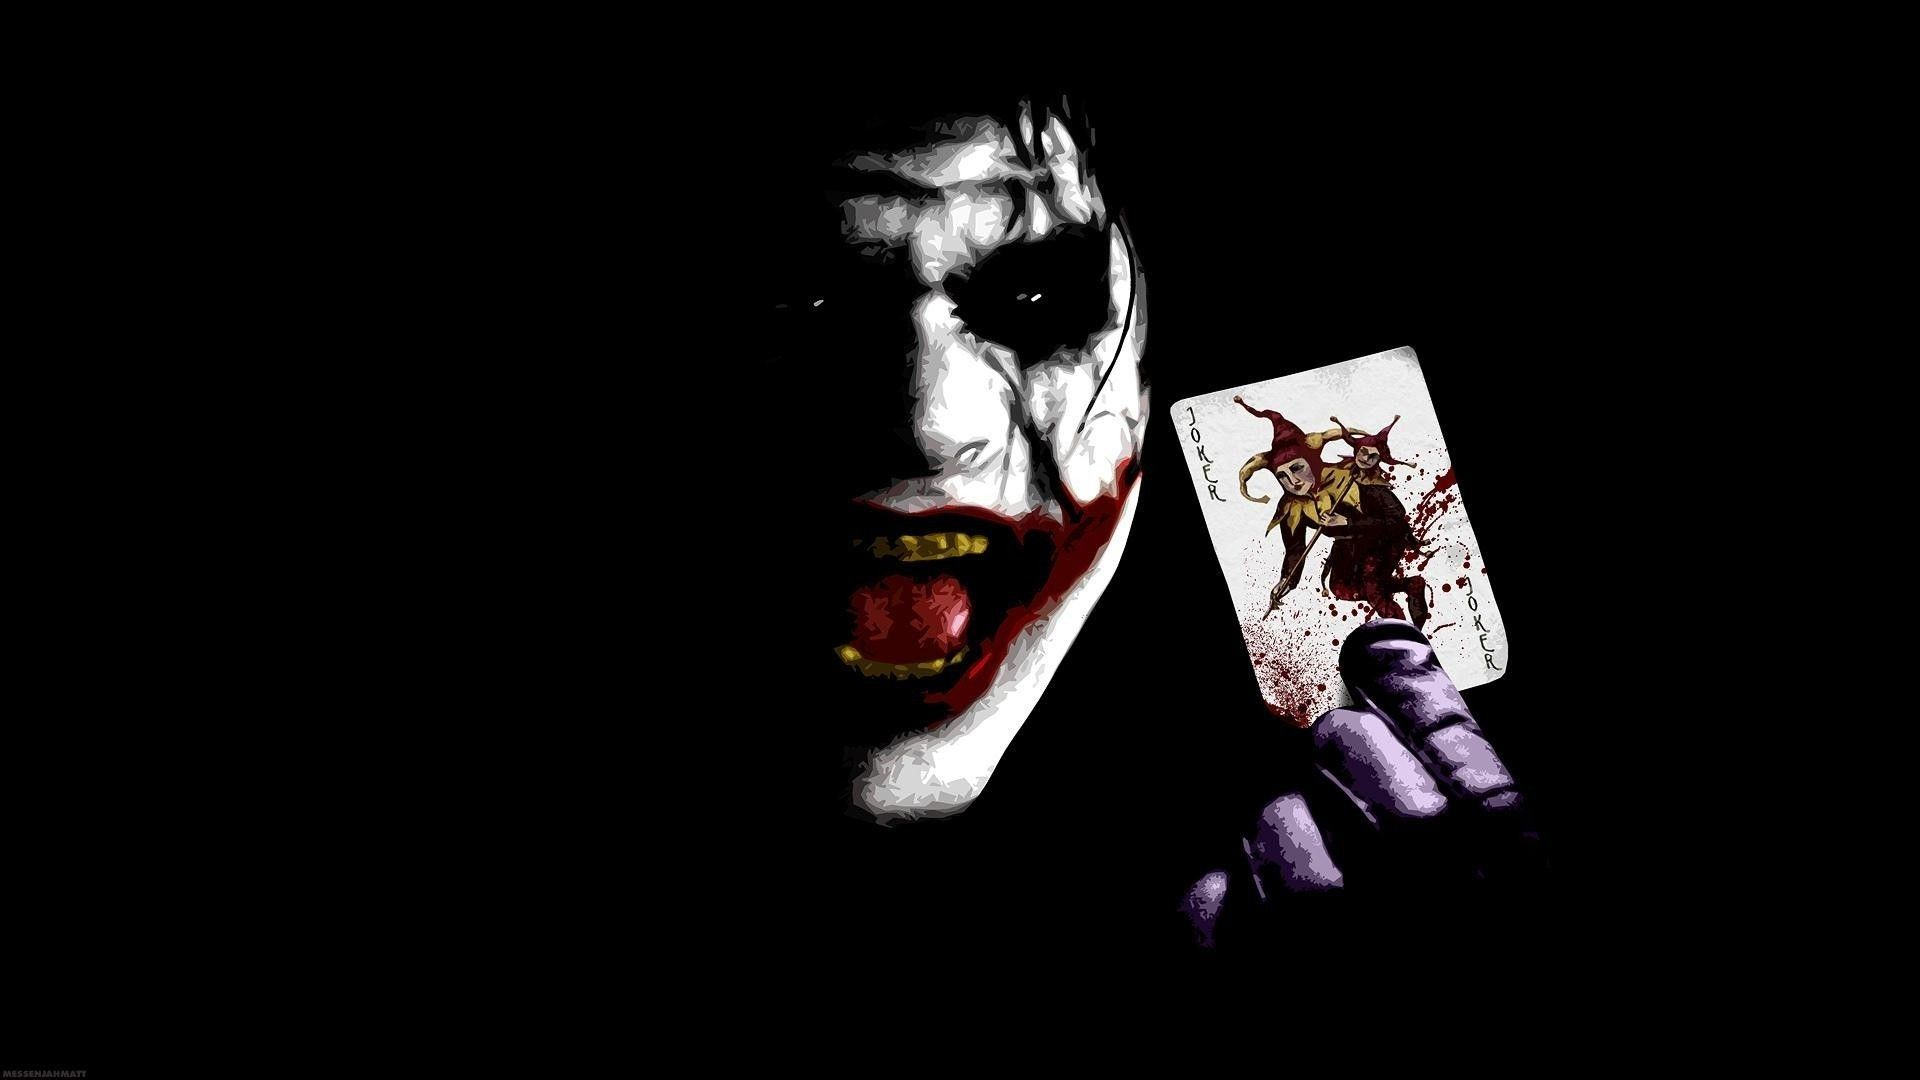 Res 1920x1080 Hd Cool Wallpapers Pc And Ipad Desktop Joker Hd Wallpaper Joker Wallpapers Cool Wallpapers For Phones